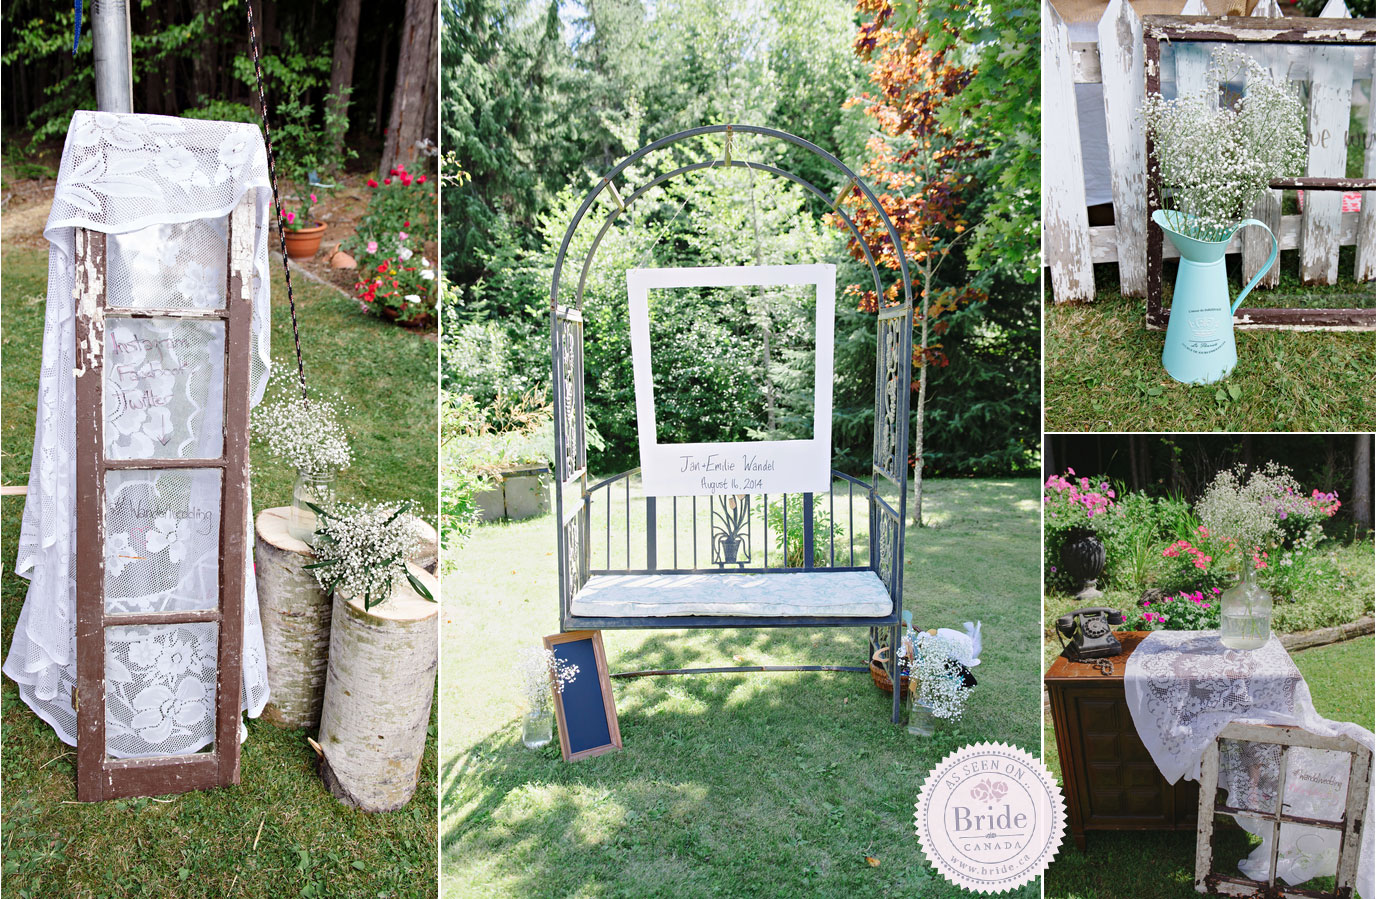 Backyard Wedding Decorations Diy : 40rusticbackyardweddingceremonydecorideasjpg